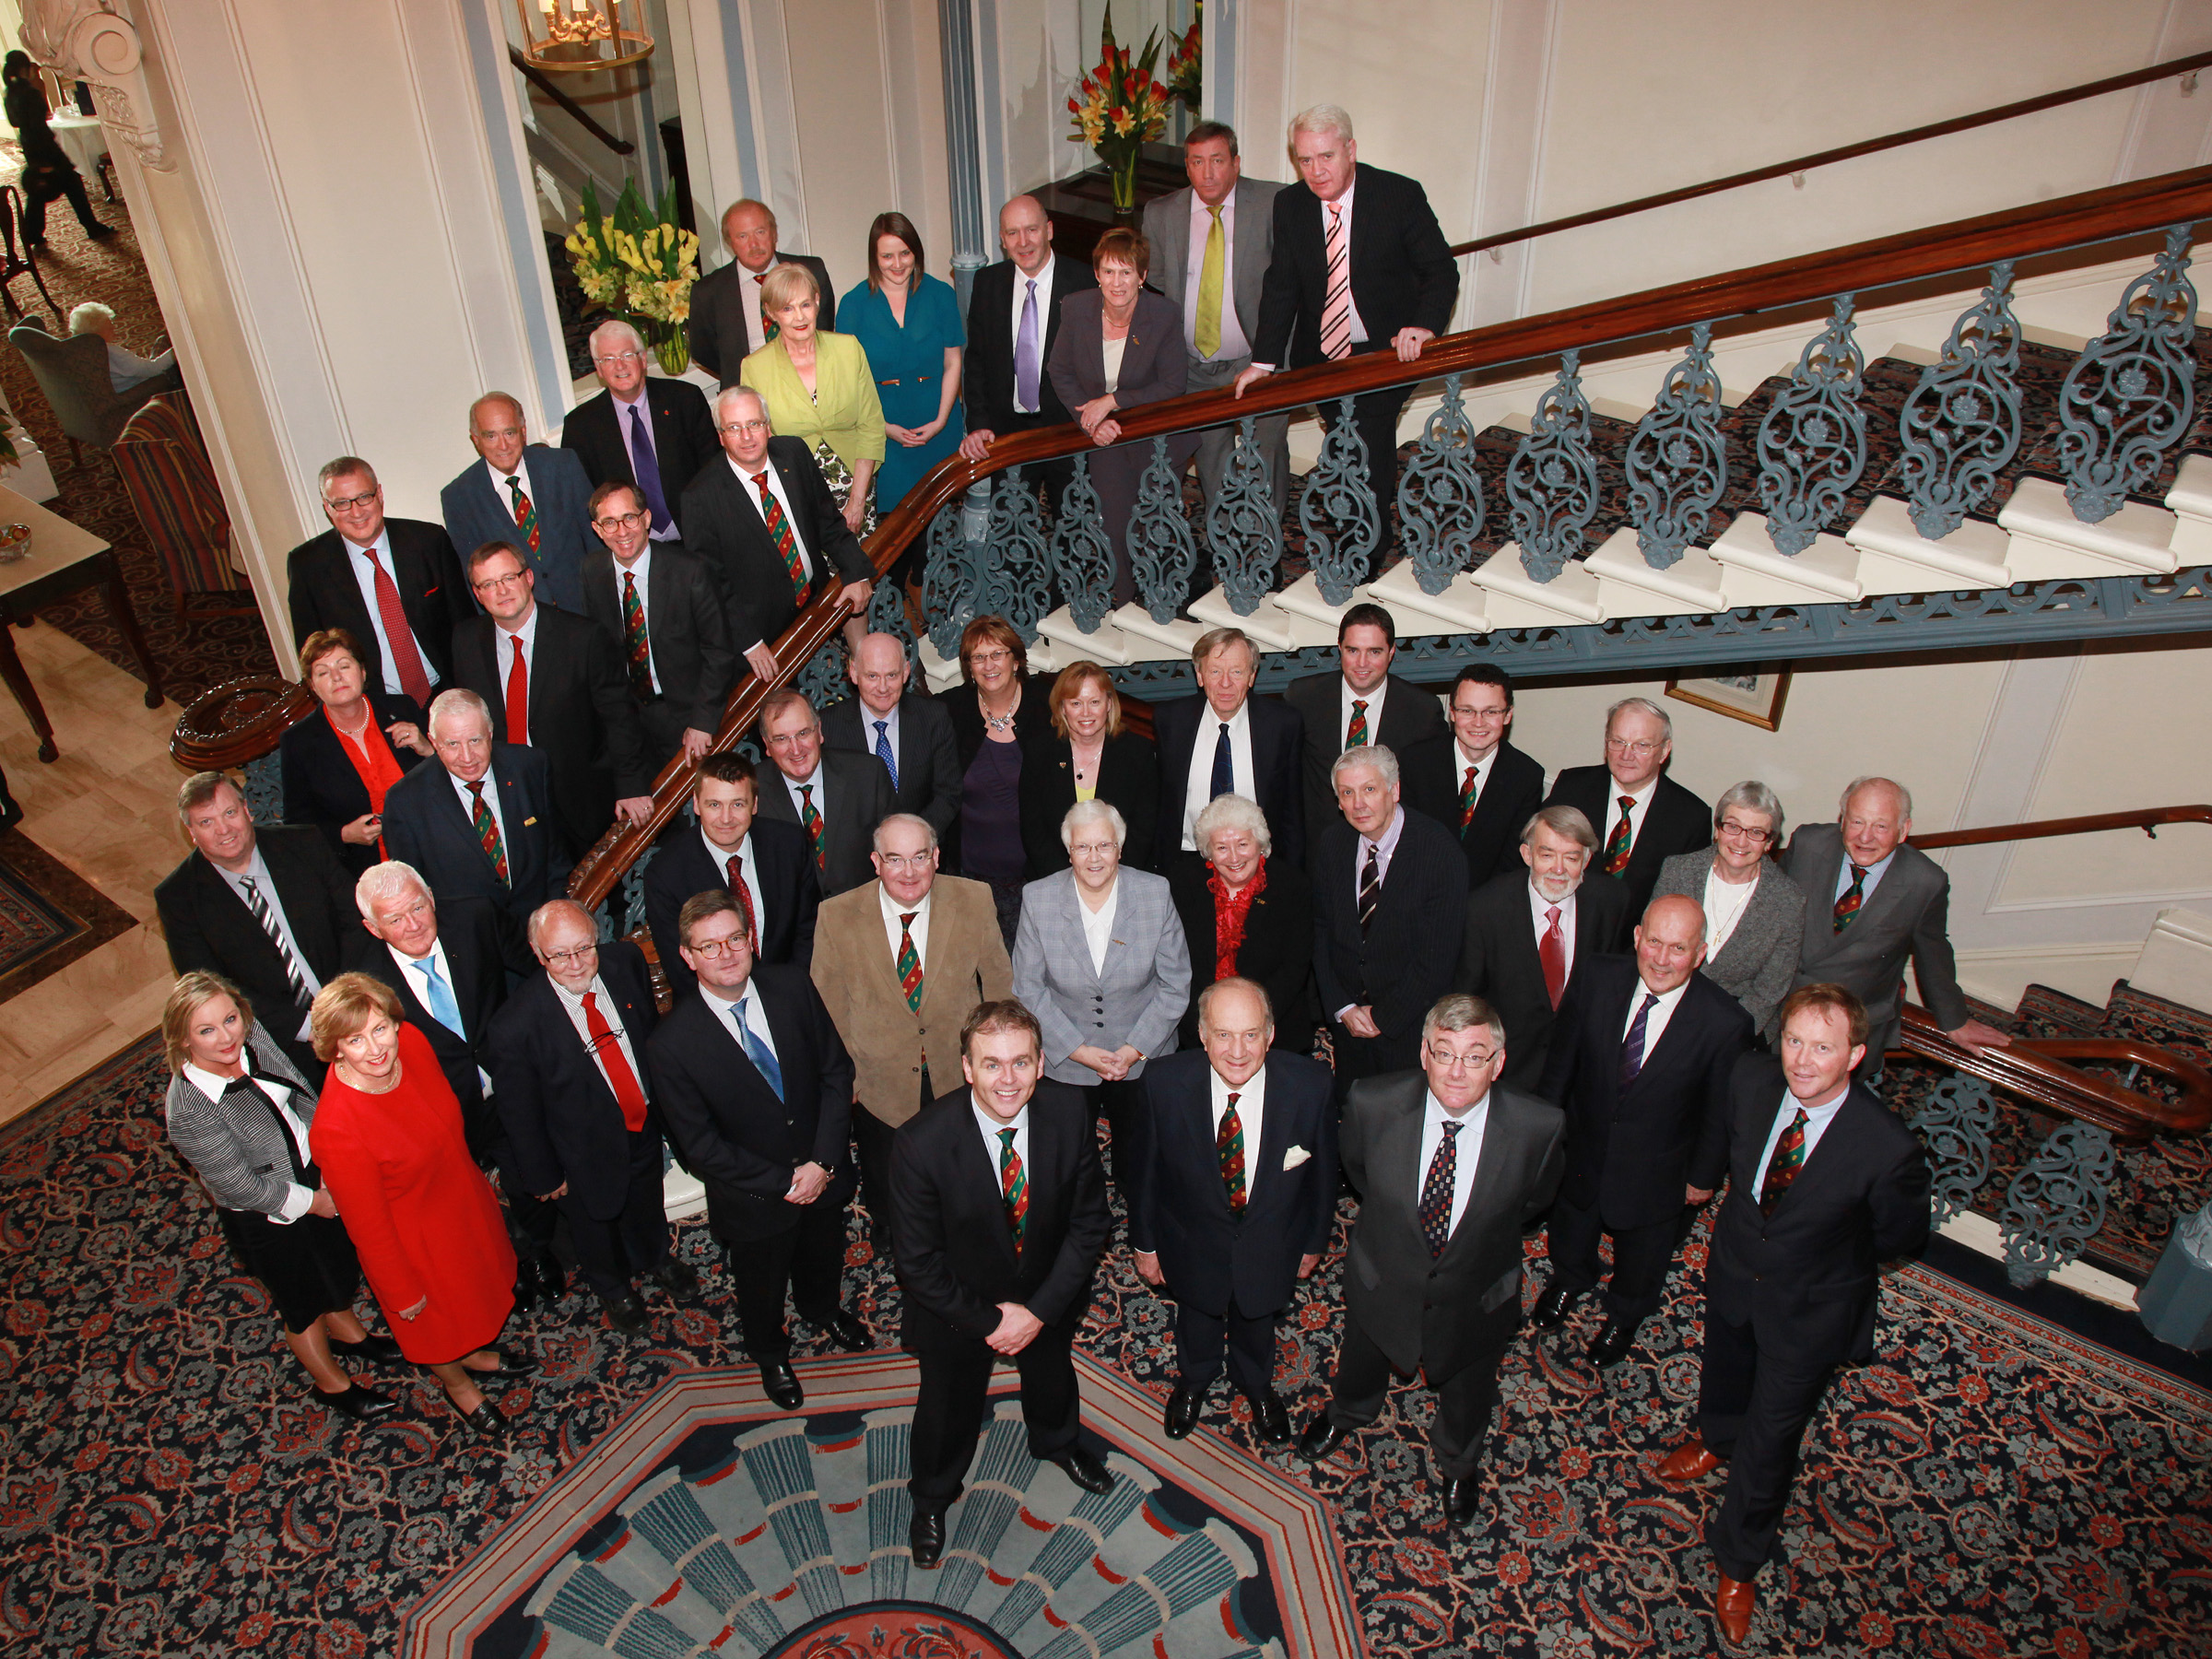 Delegates to the 43rd plenary of the British Irish Parliamentary Assembly, Grand Hotel, Brighton, 24-25 October 2011